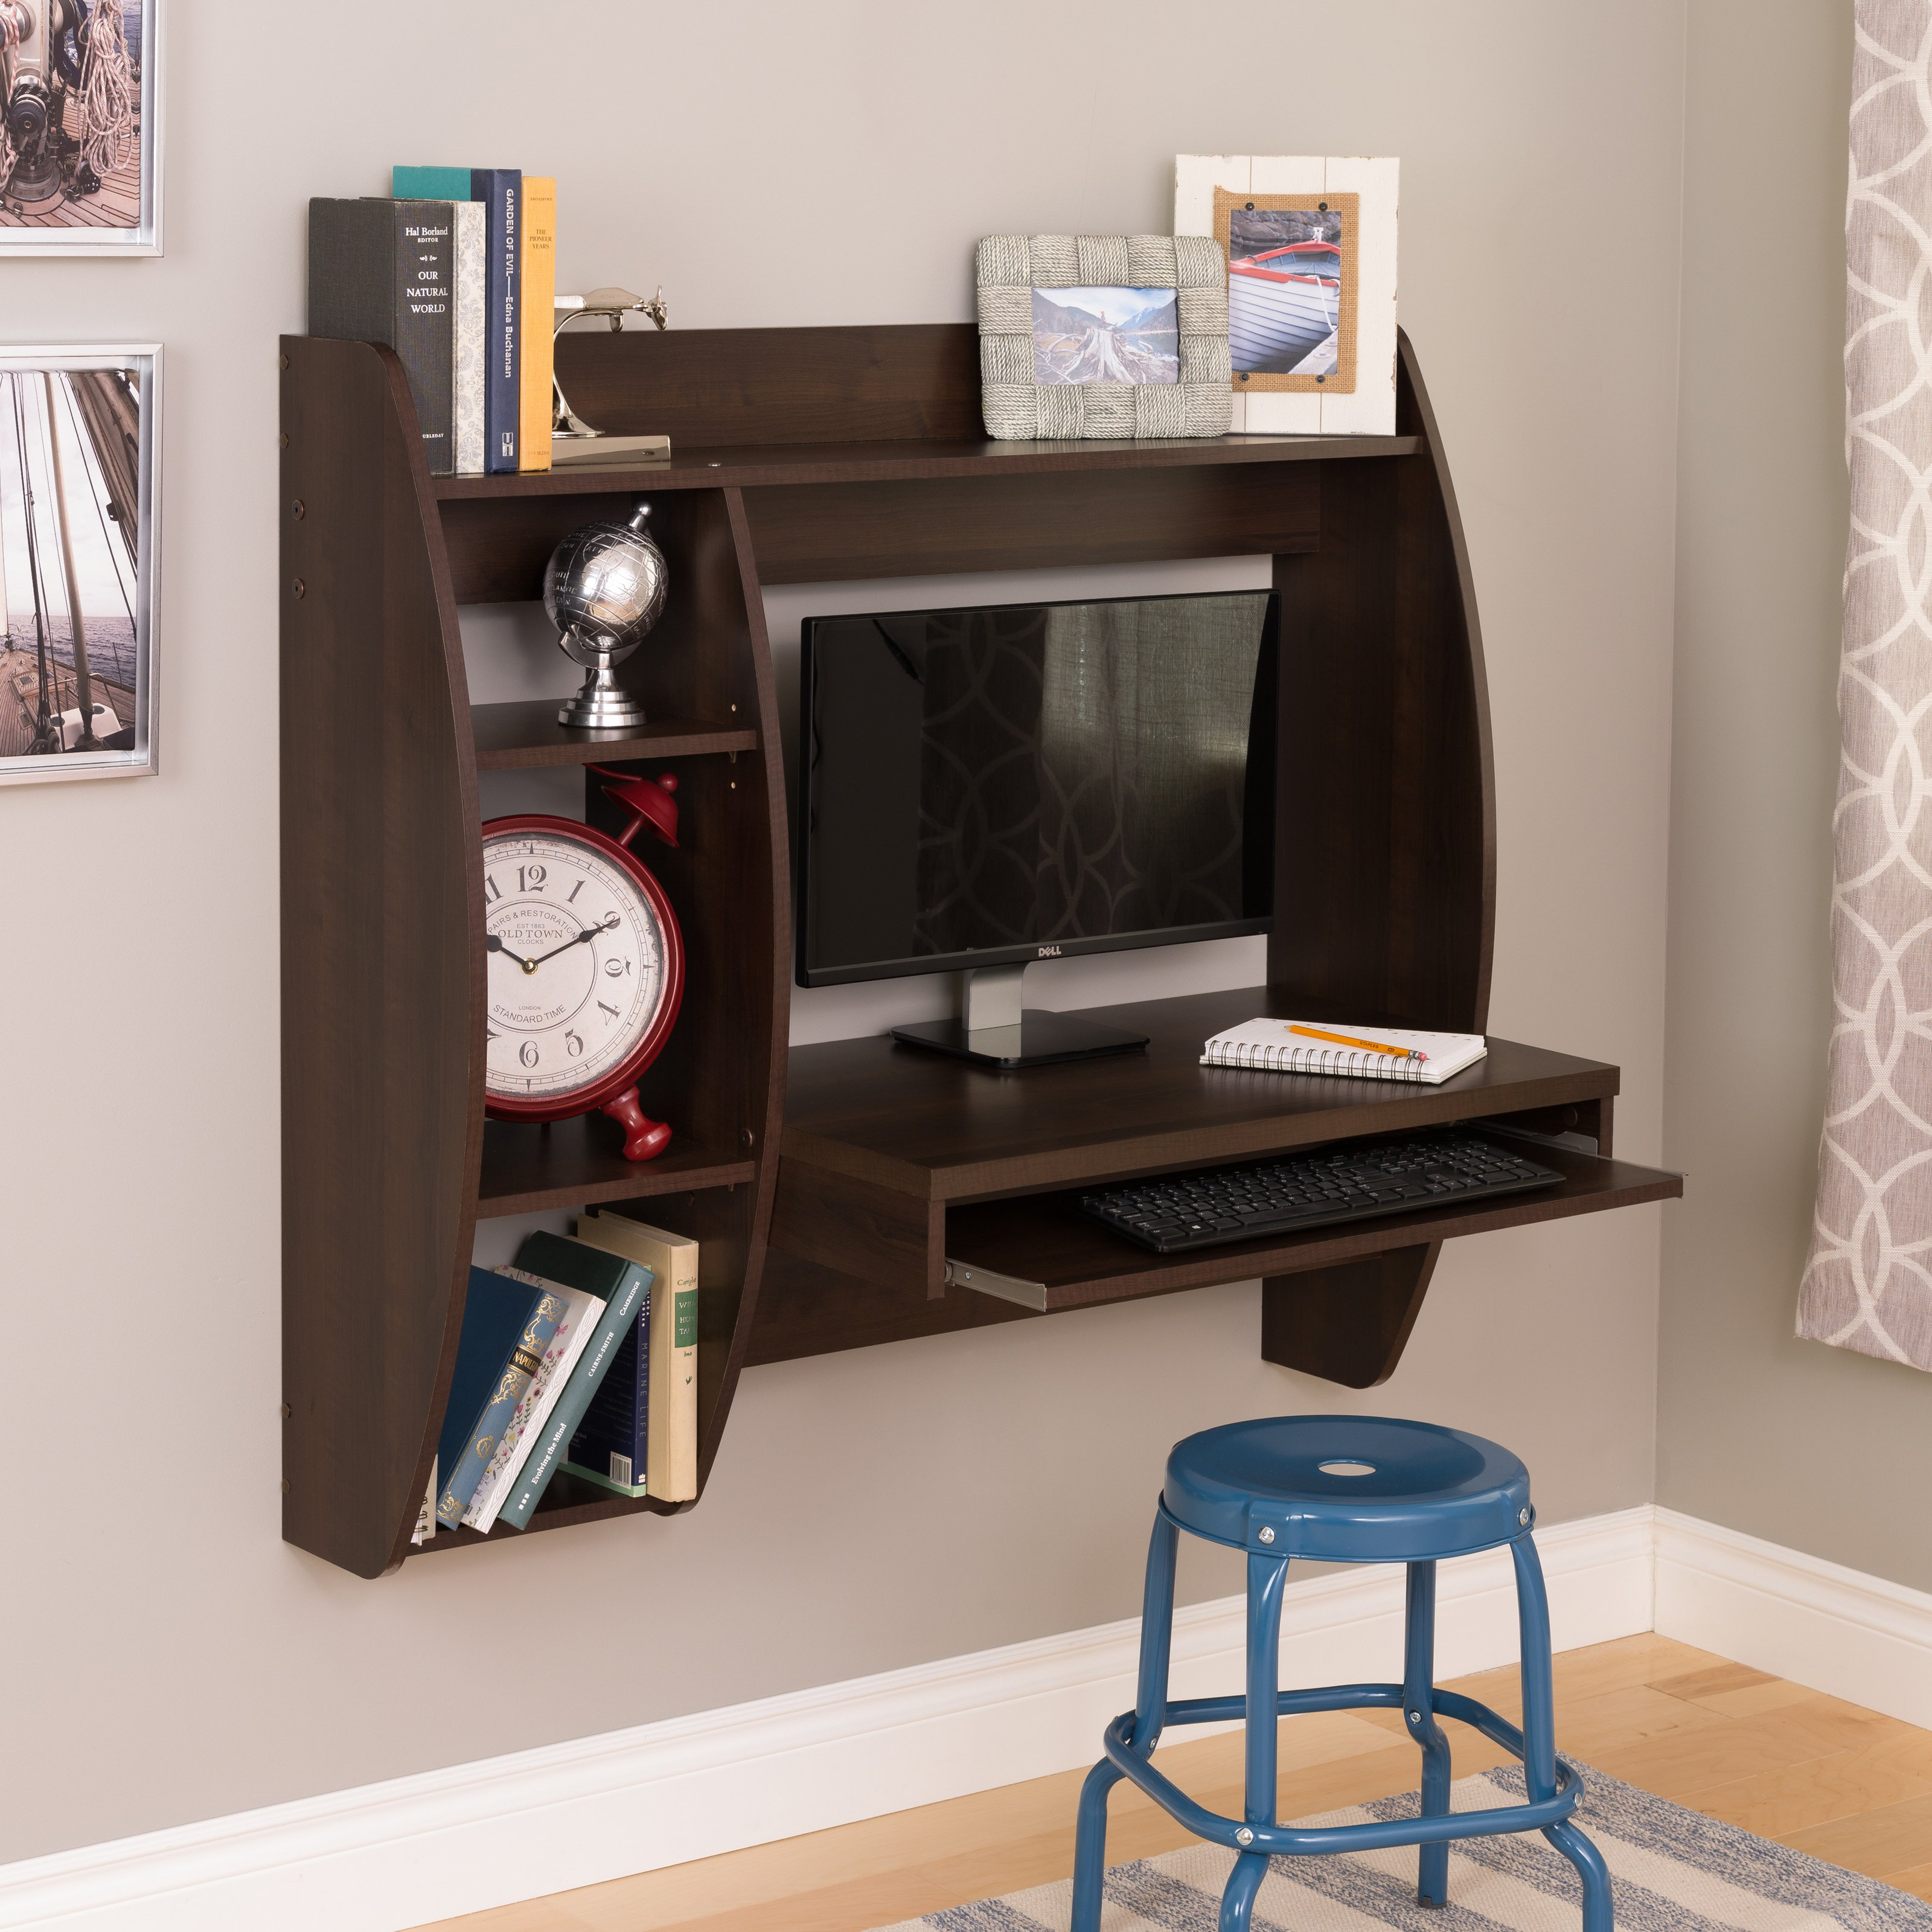 Prepac Espresso Floating Desk With Storage And Keyboard Tray About This Picture 1 Of 2